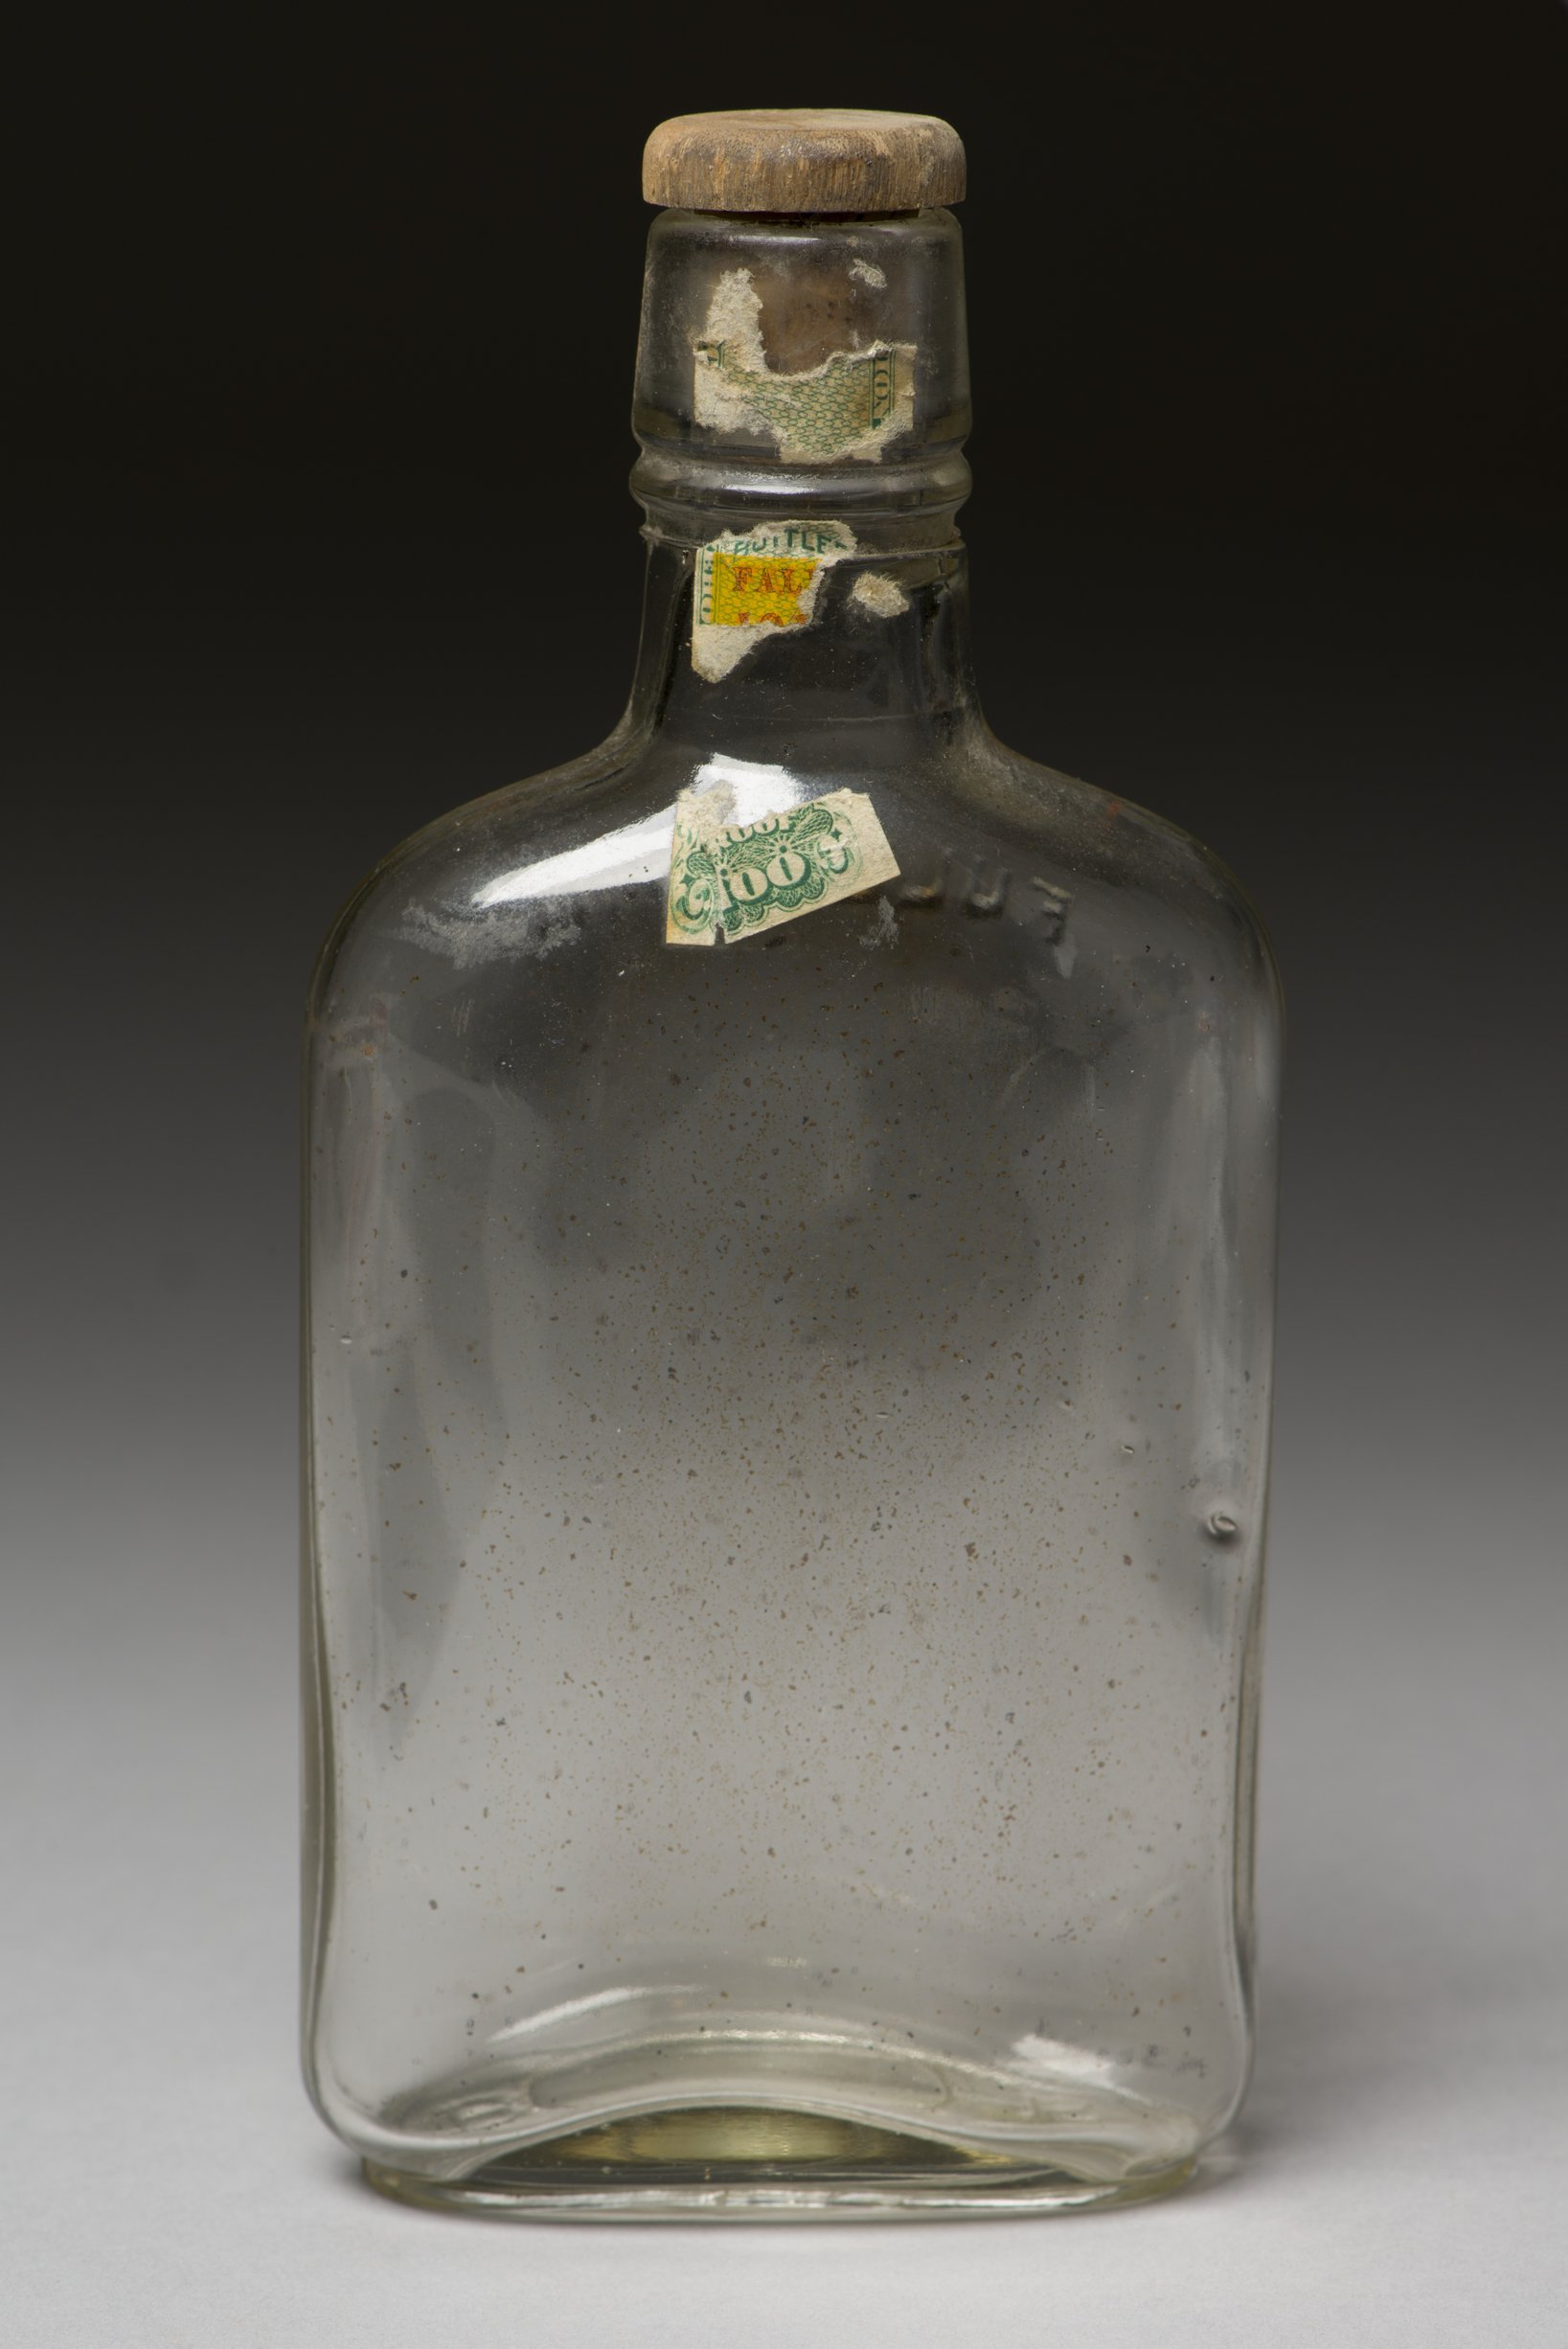 Liquor Bottle from Shawnee Indian Mission, 14JO362 - 1